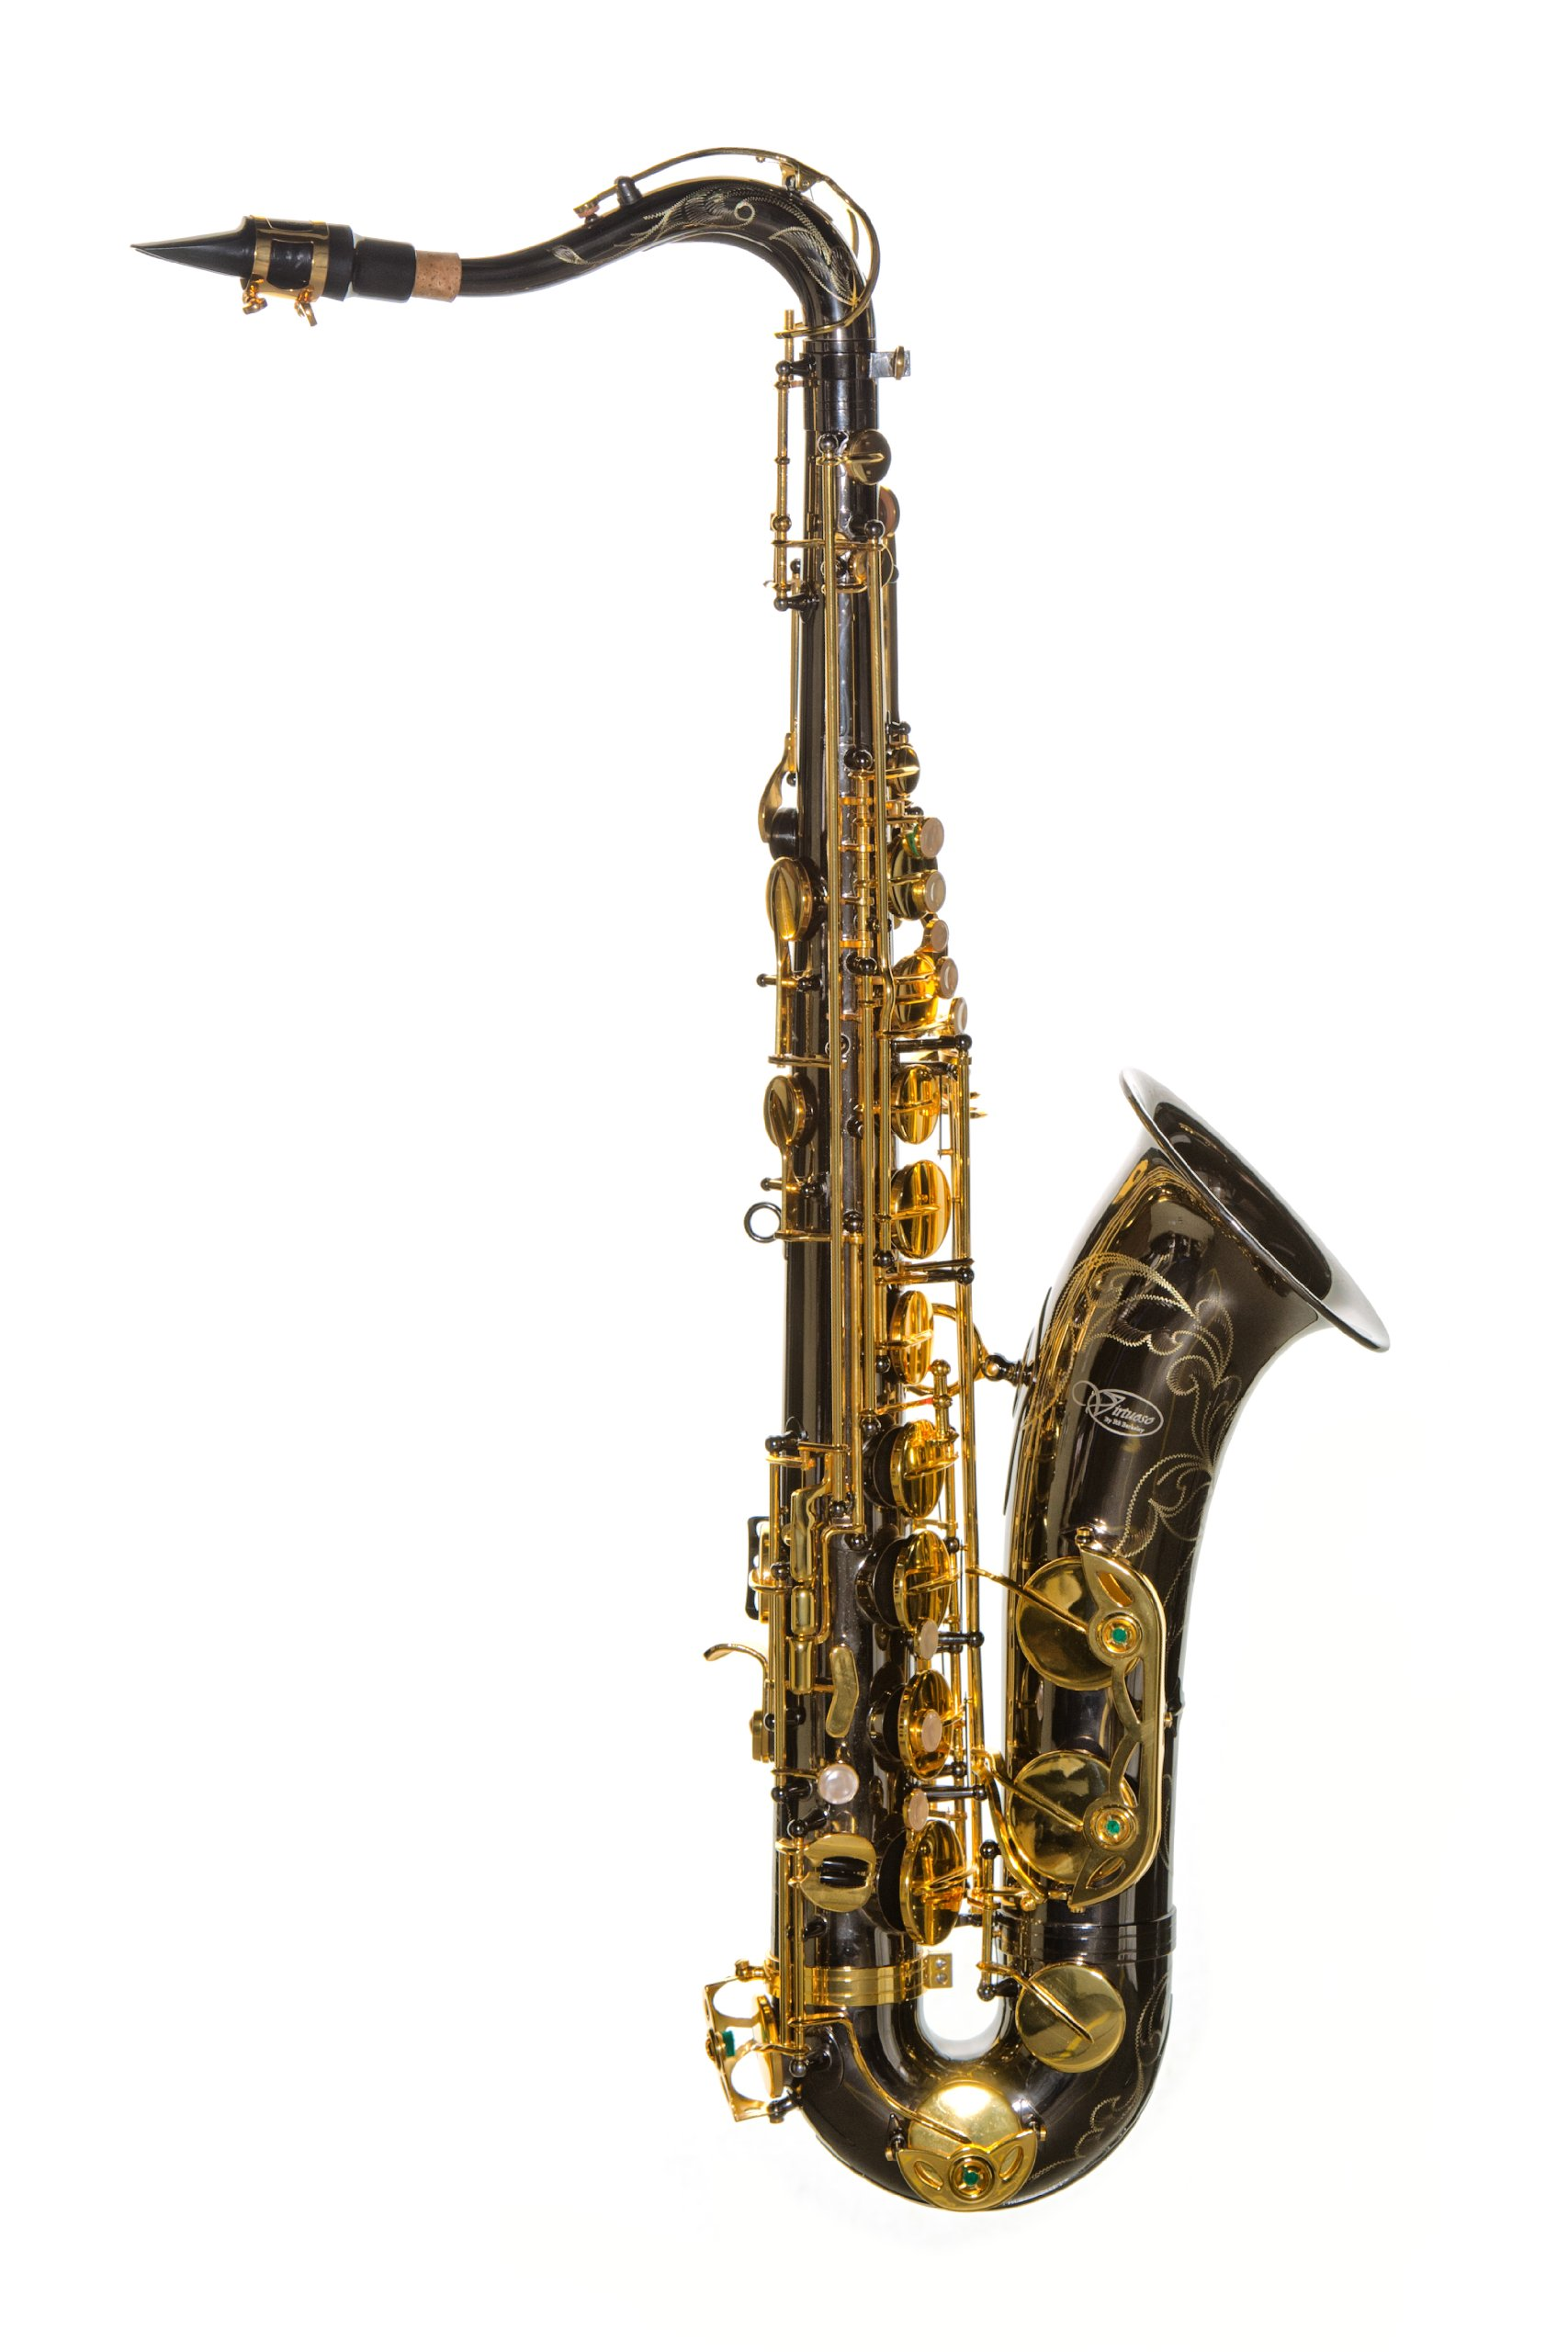 VIRT2004B-Black Nickel-Virtuoso Saxophones by RS Berkeley Saxophone